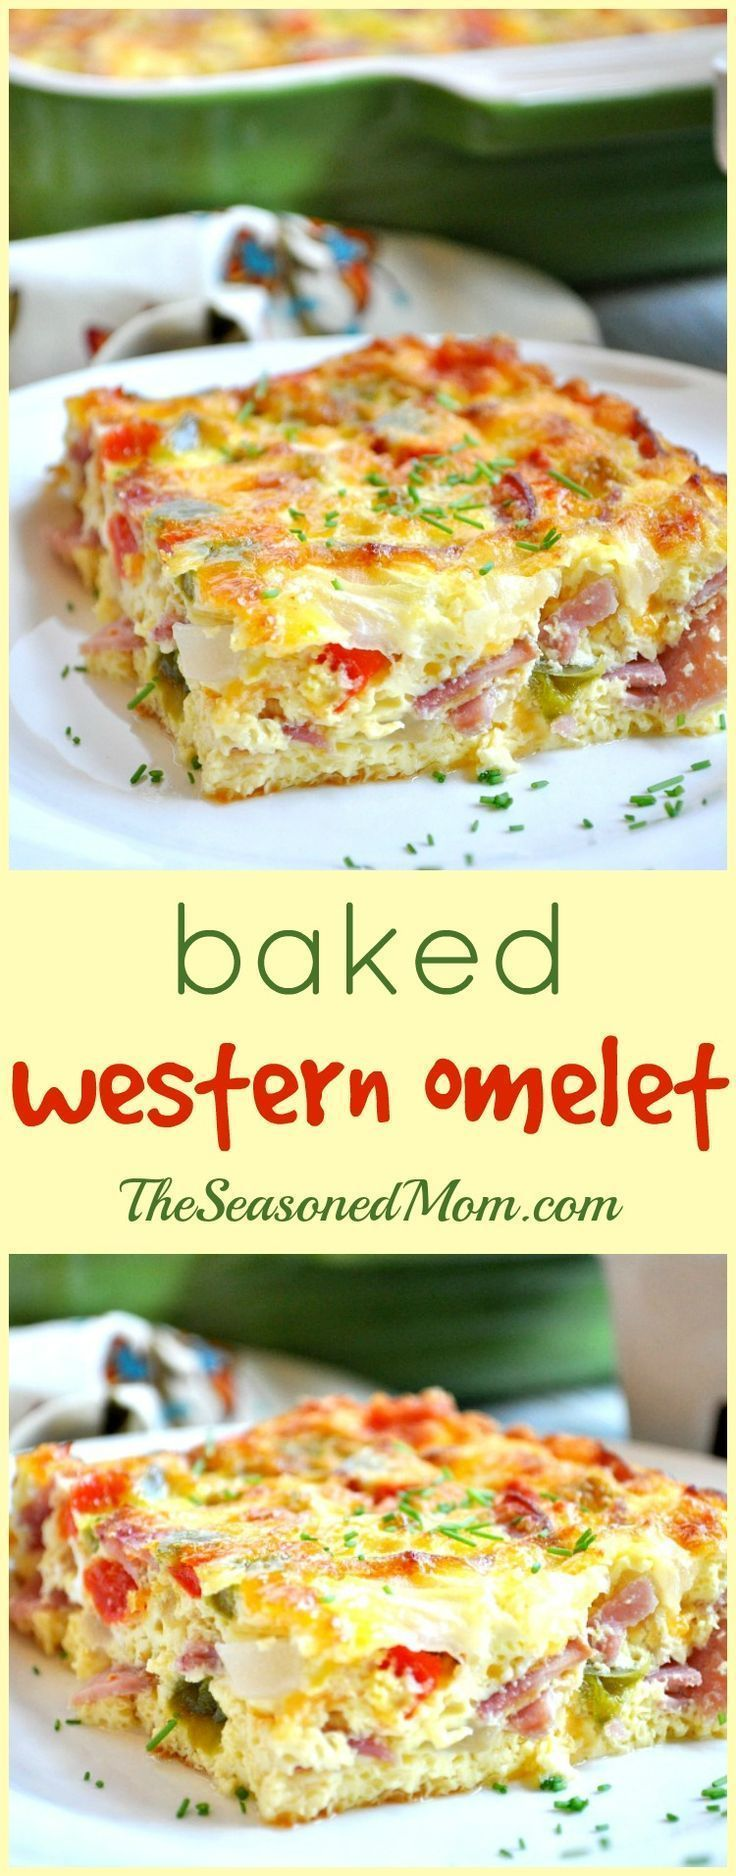 The easiest way to make eggs for a group! Full of protein, veggies, and lean meat, this Baked Western Omelet is a healthy breakfast, brunch, or dinner option that will fill you up and keep you lean! #breakfast #omelet #healthy